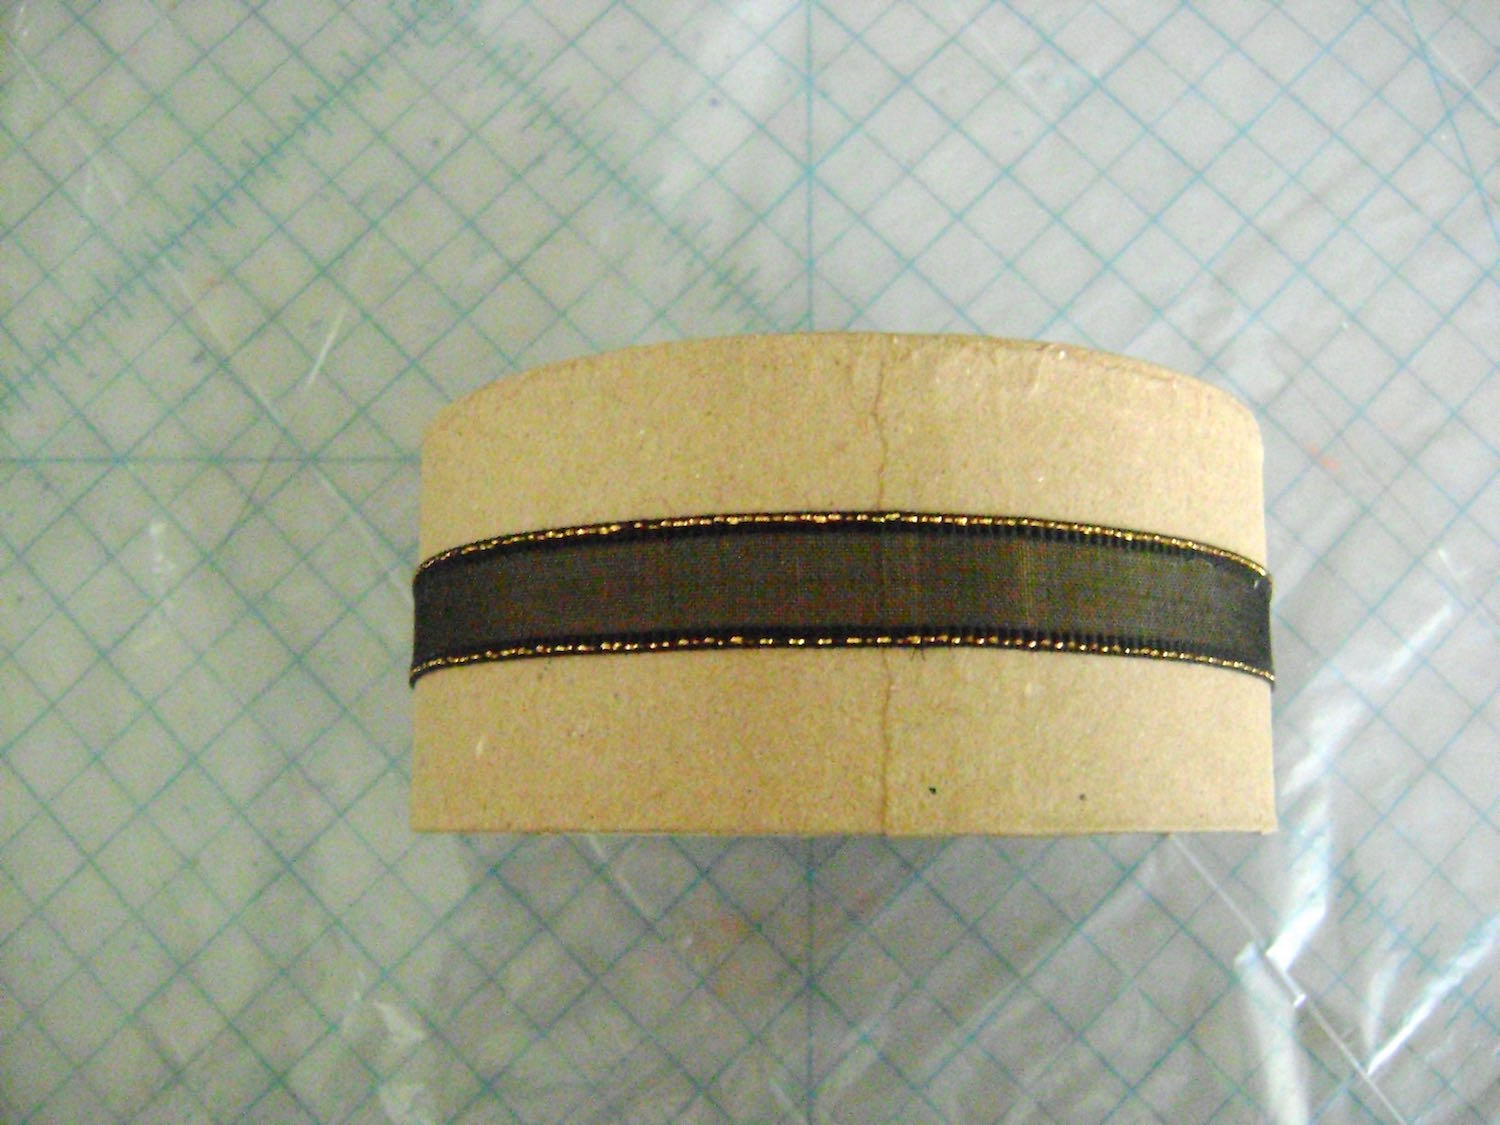 """step 9 - Cut a 14"""" long strip of ribbon. Line it with double-sided adhesive tape and press it around the box cover. Attach a decorative button over the ribbon seam with E-6000 glue."""